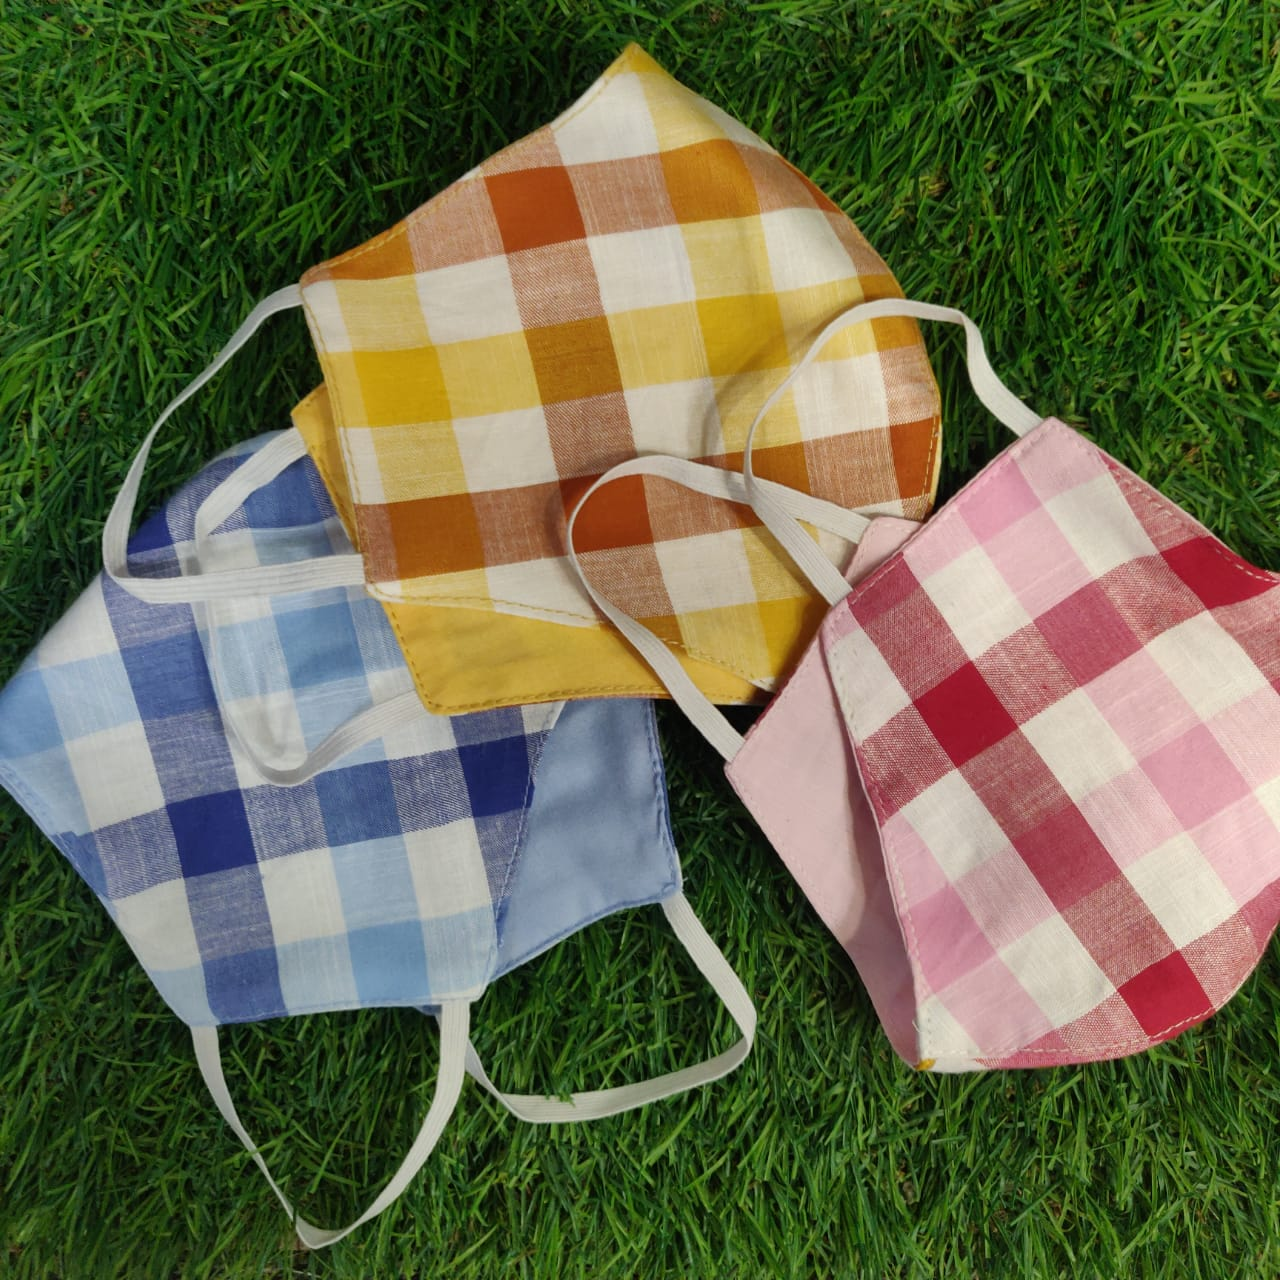 Sterilised 2 Layer Reusable Cotton Masks - Reversible Light Check Prints - Set of 6